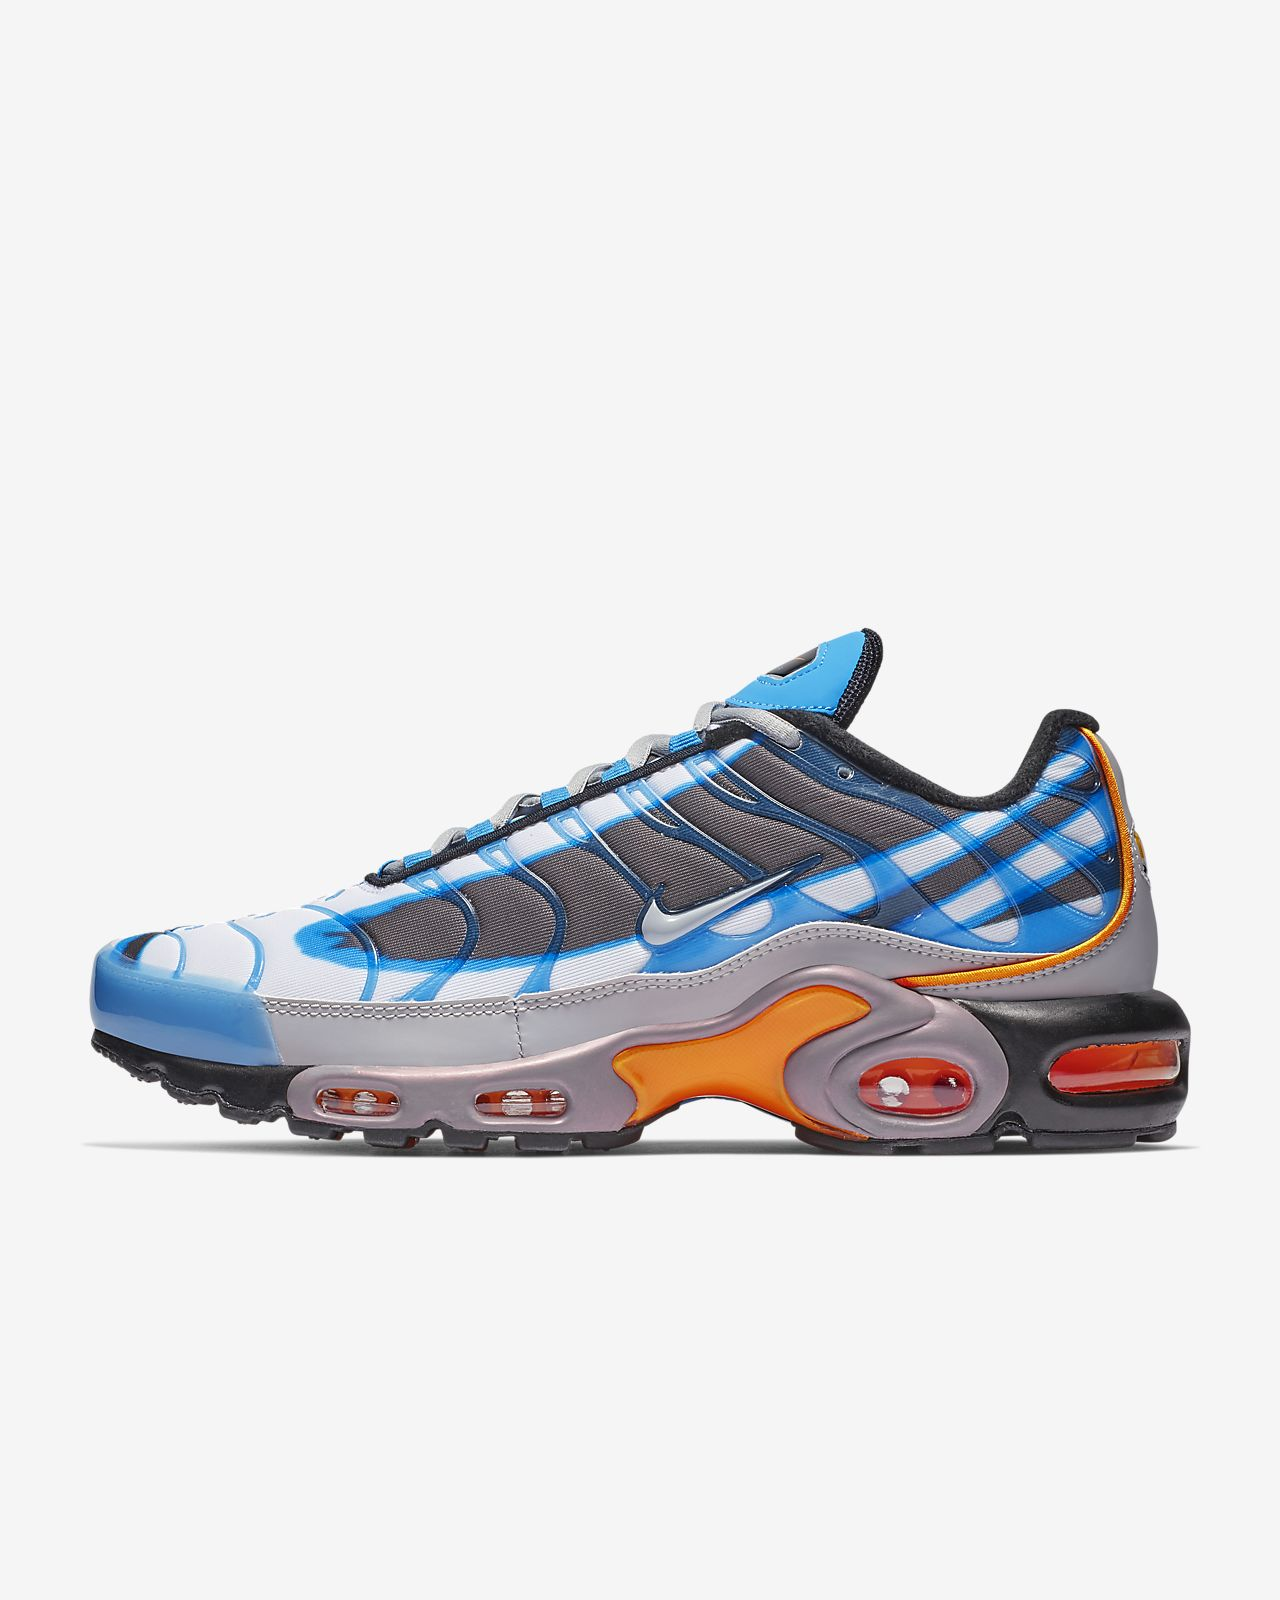 finest selection 86a2c e1348 ... Nike Air Max Plus Premium Men s Shoe